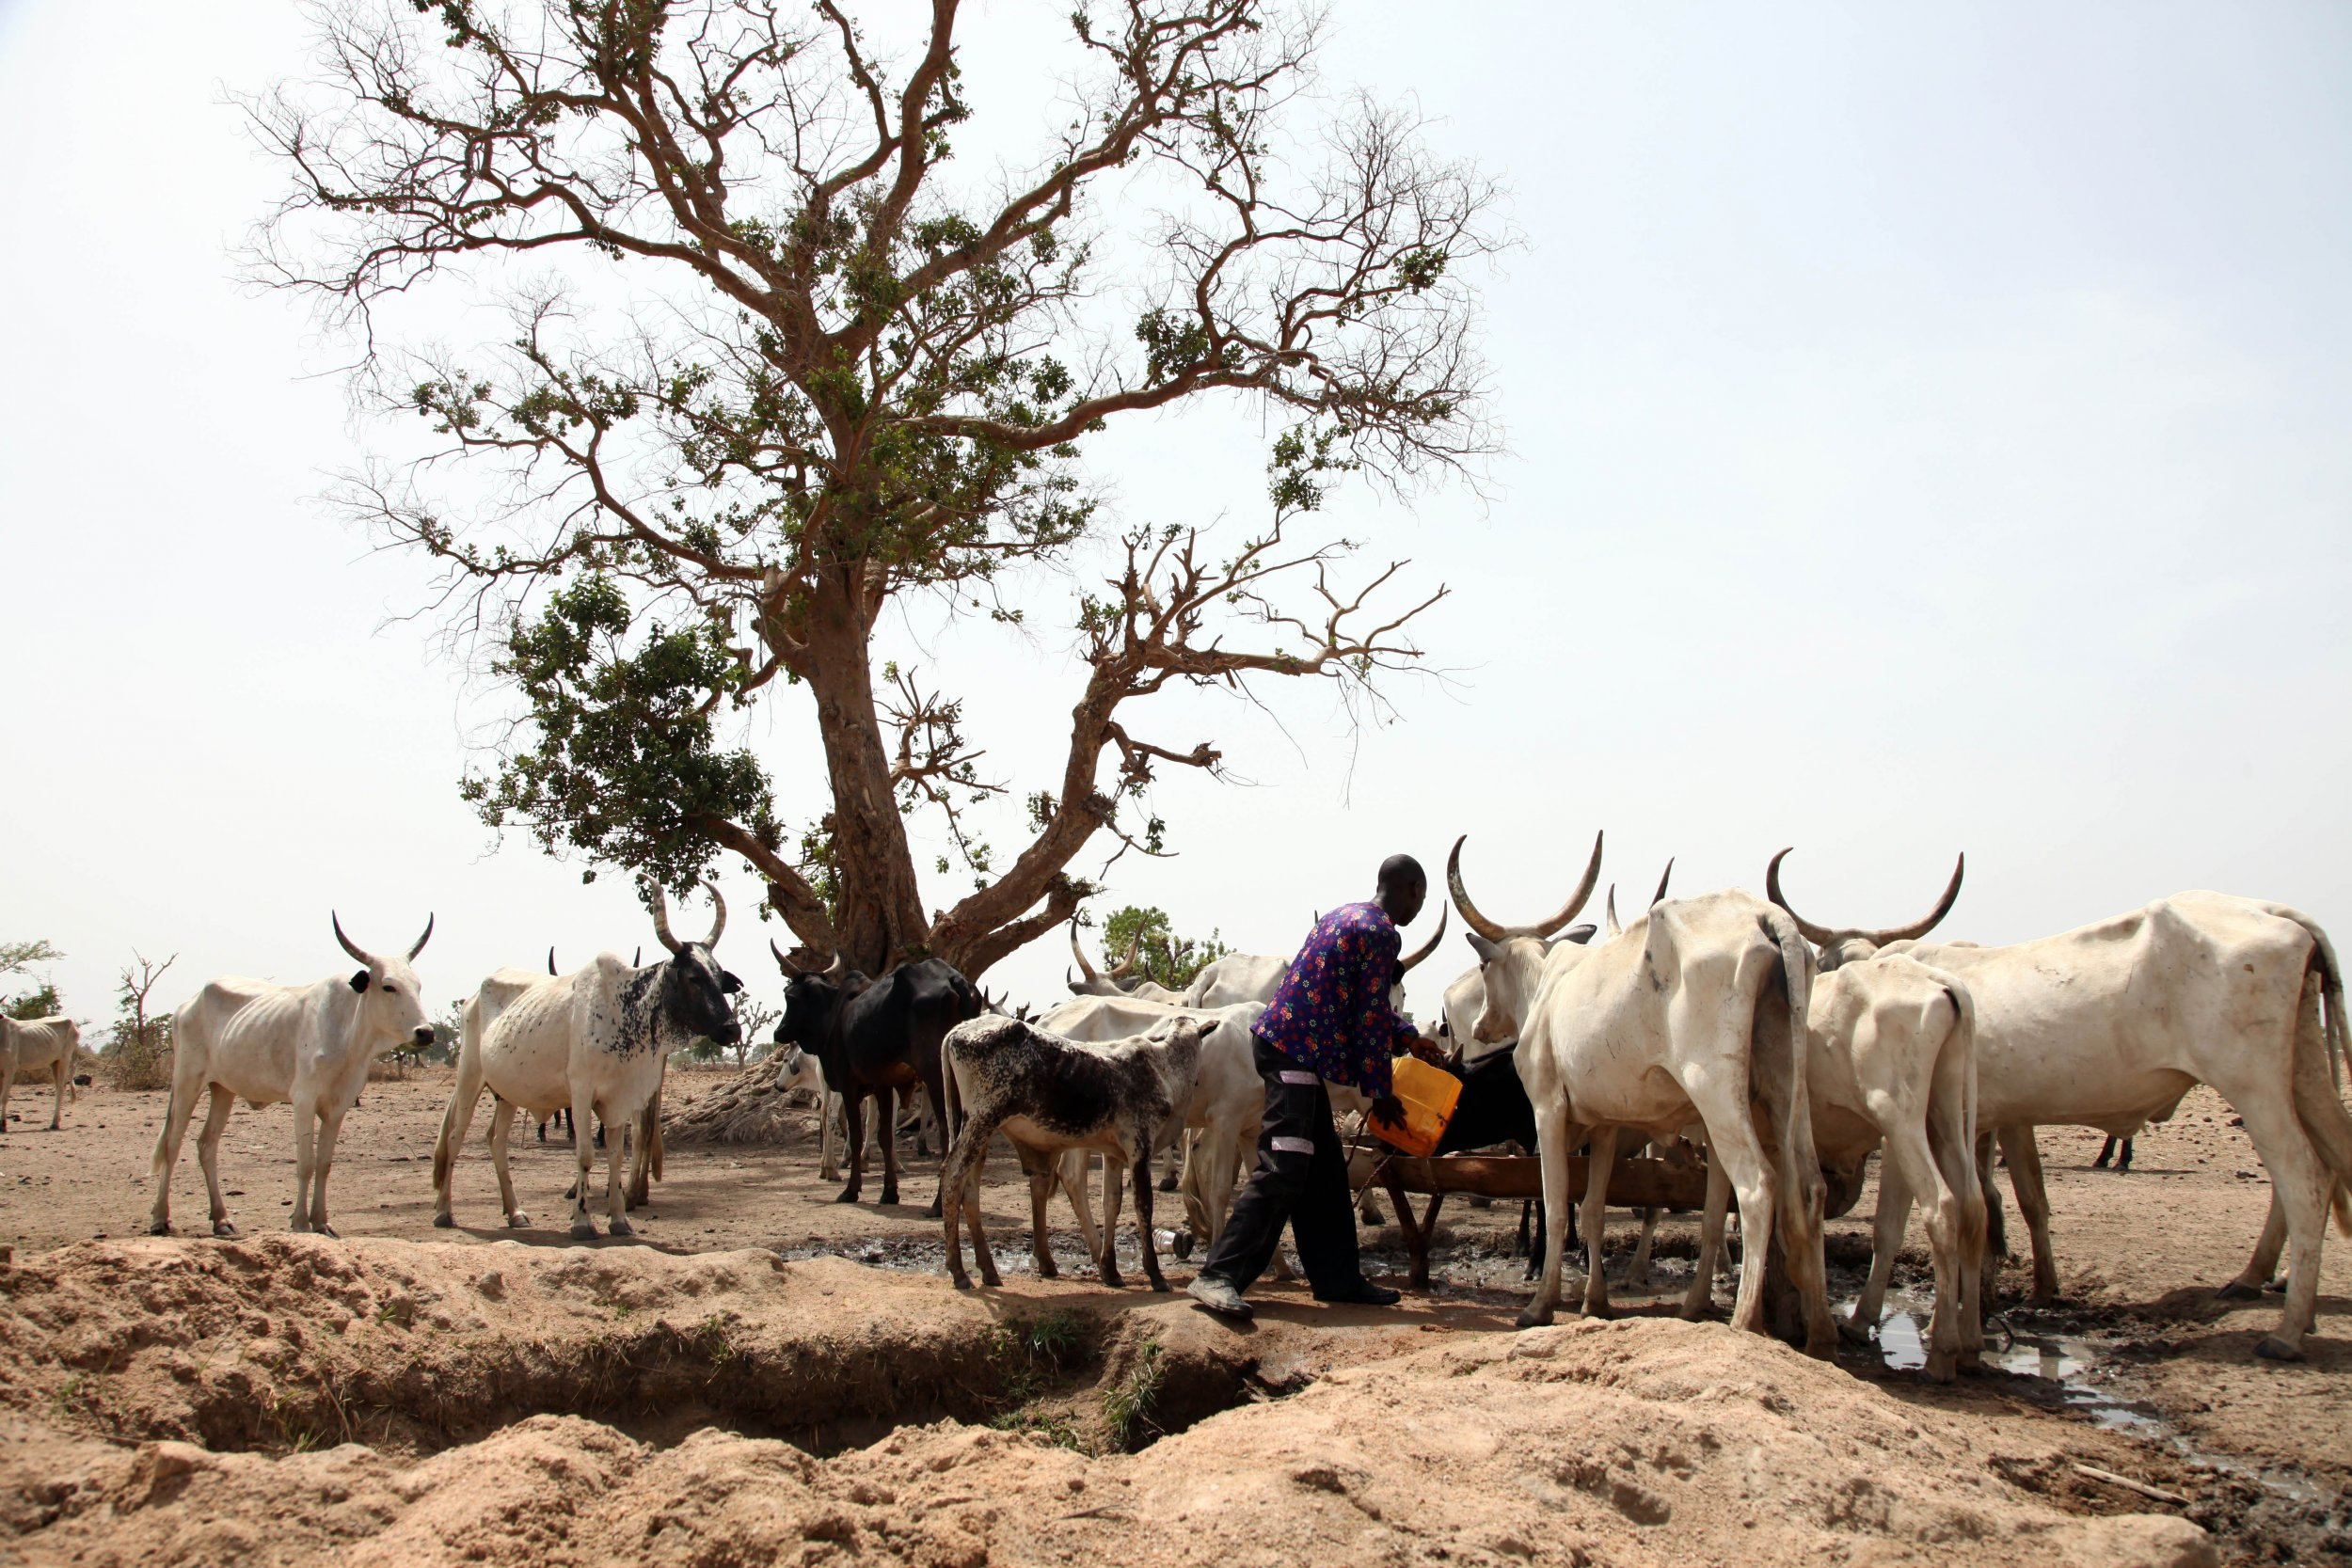 Fulani herdsmen waters cattle in Nigeria.